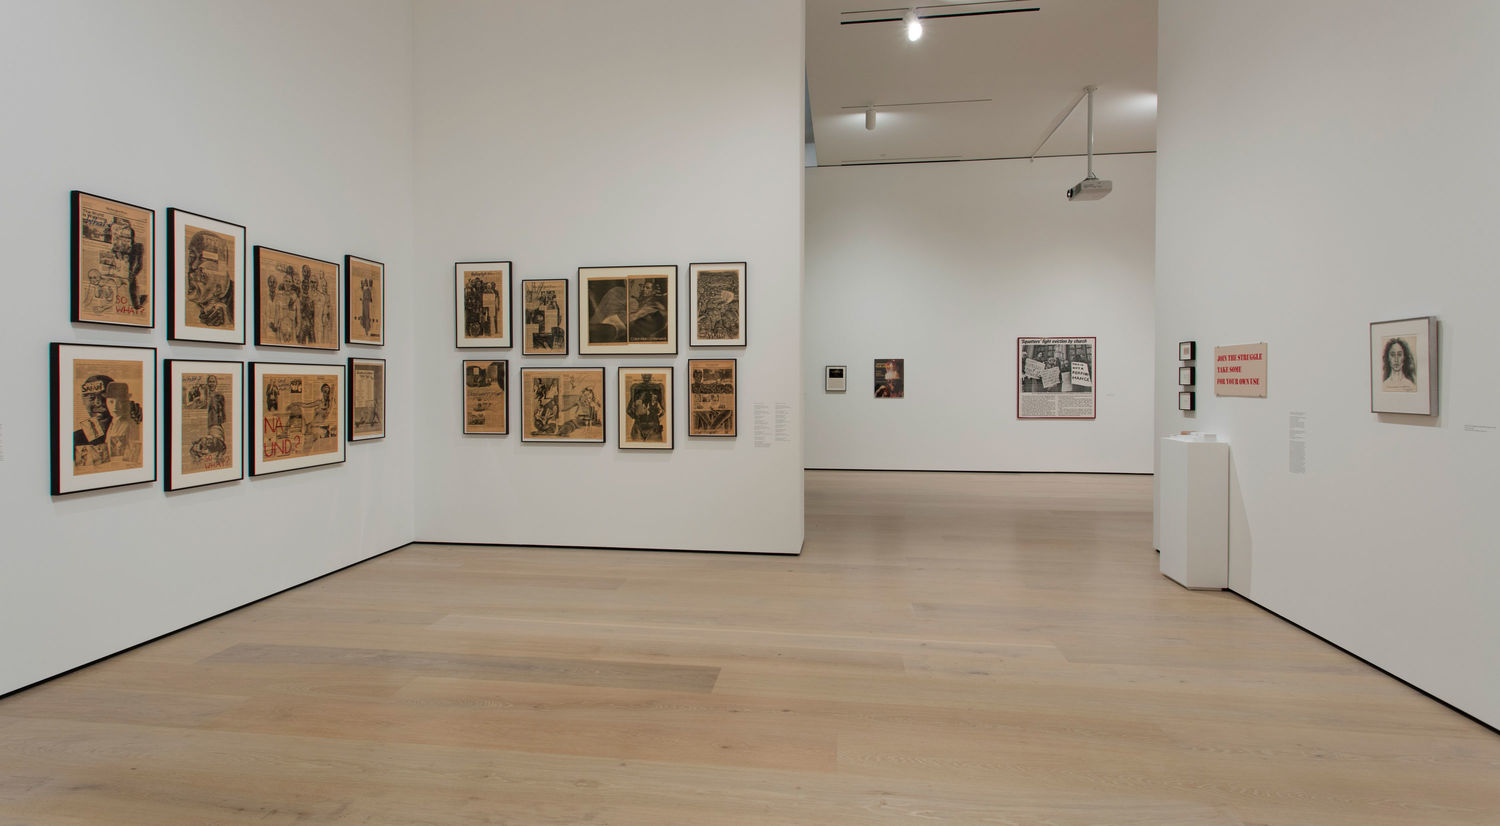 Adrian Piper: Concepts and Intuitions, 1965-2016, installation view, Hammer Museum, Los Angeles, October 7, 2018–January 6, 2019. Photo: Brian Forrest.